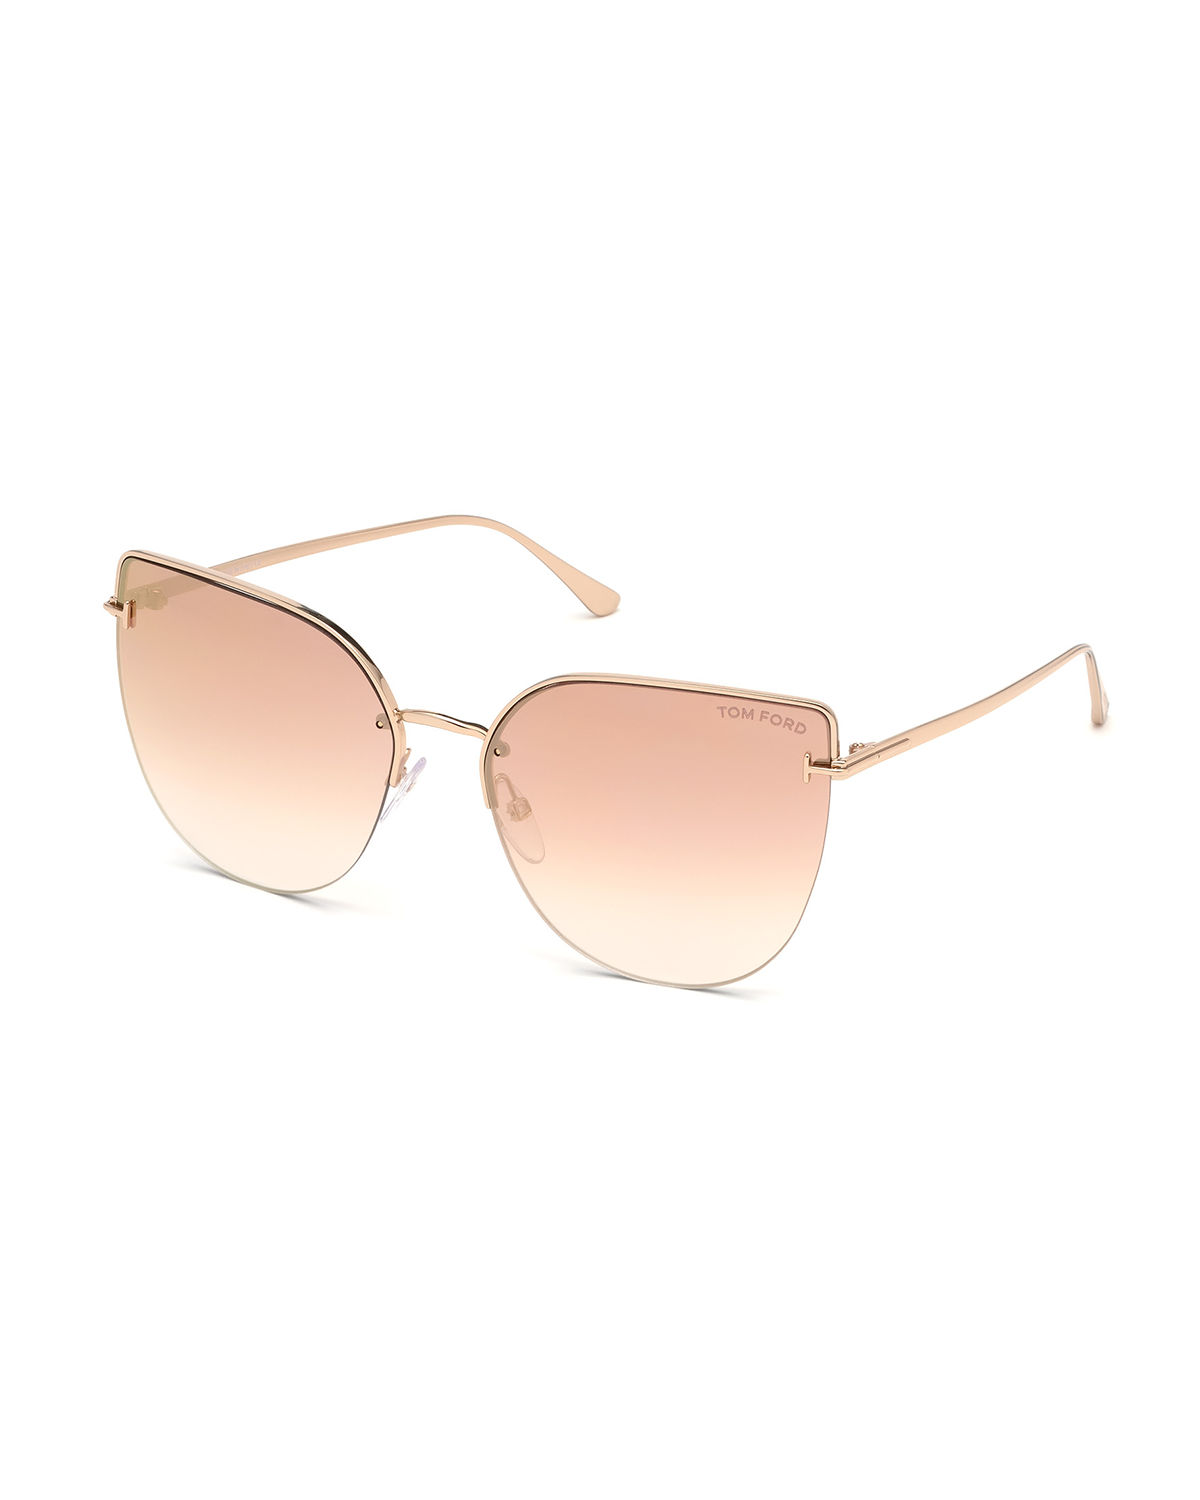 f931fa9c644d Tom Ford Ingrid 60Mm Cat Eye Sunglasses - Rose Gold  Pink W Red Mirror